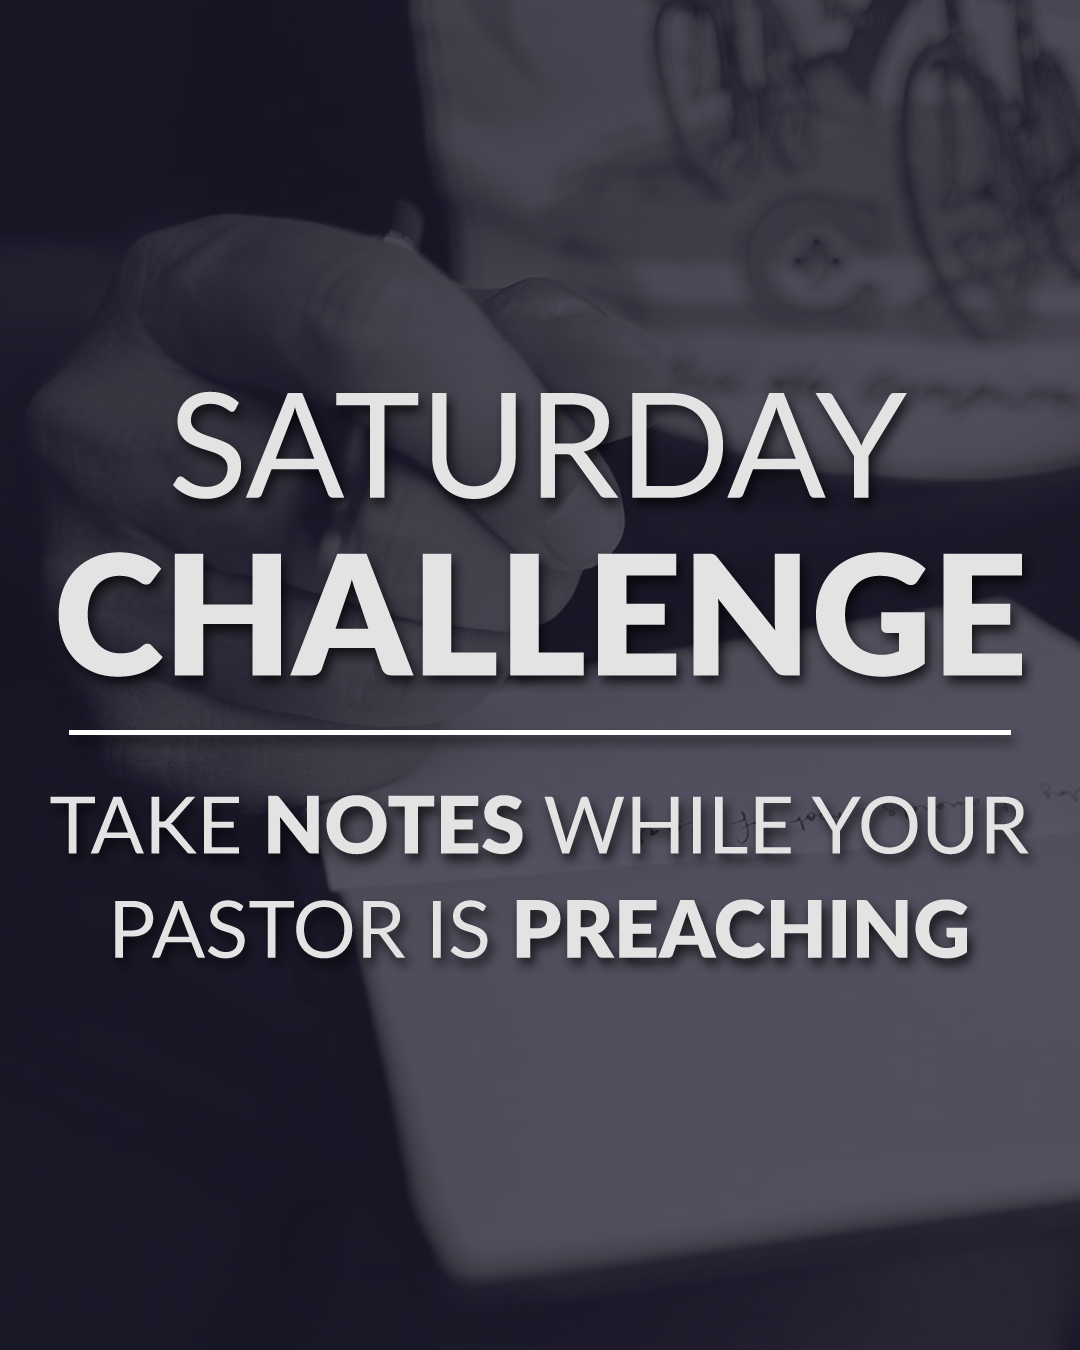 Saturday Challenge - Take Notes While Your Pastor Is Preaching